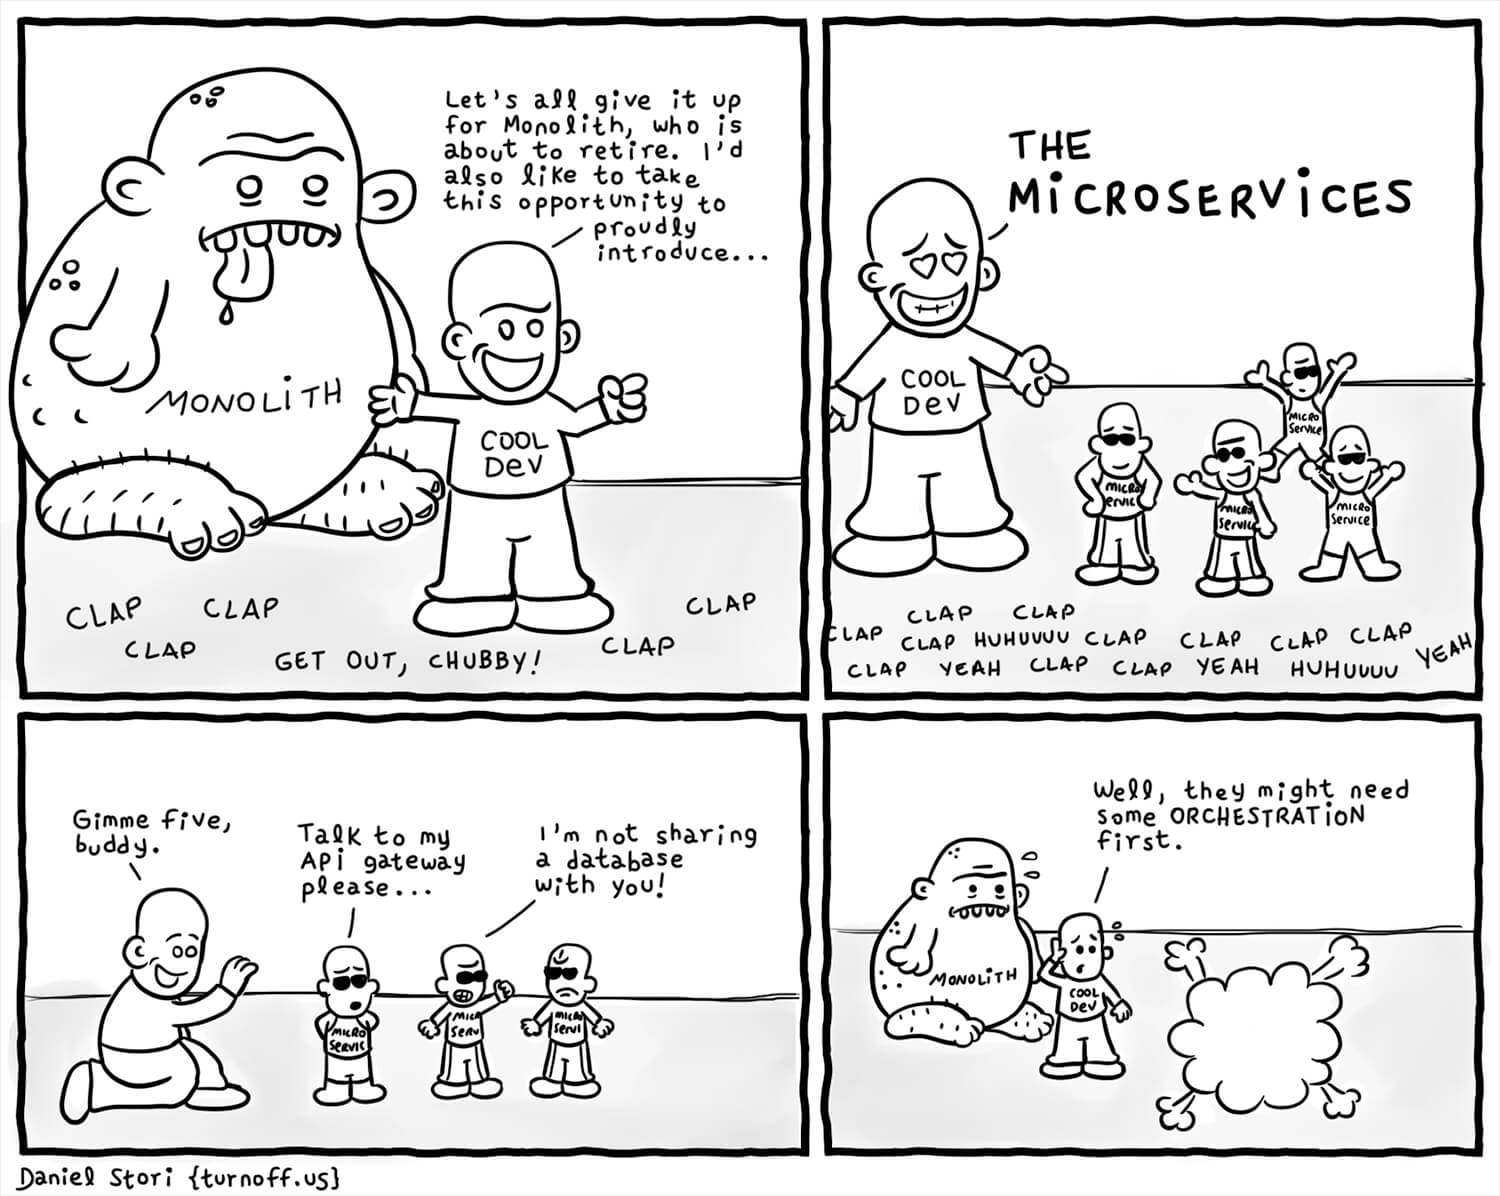 Microservices Cartoon